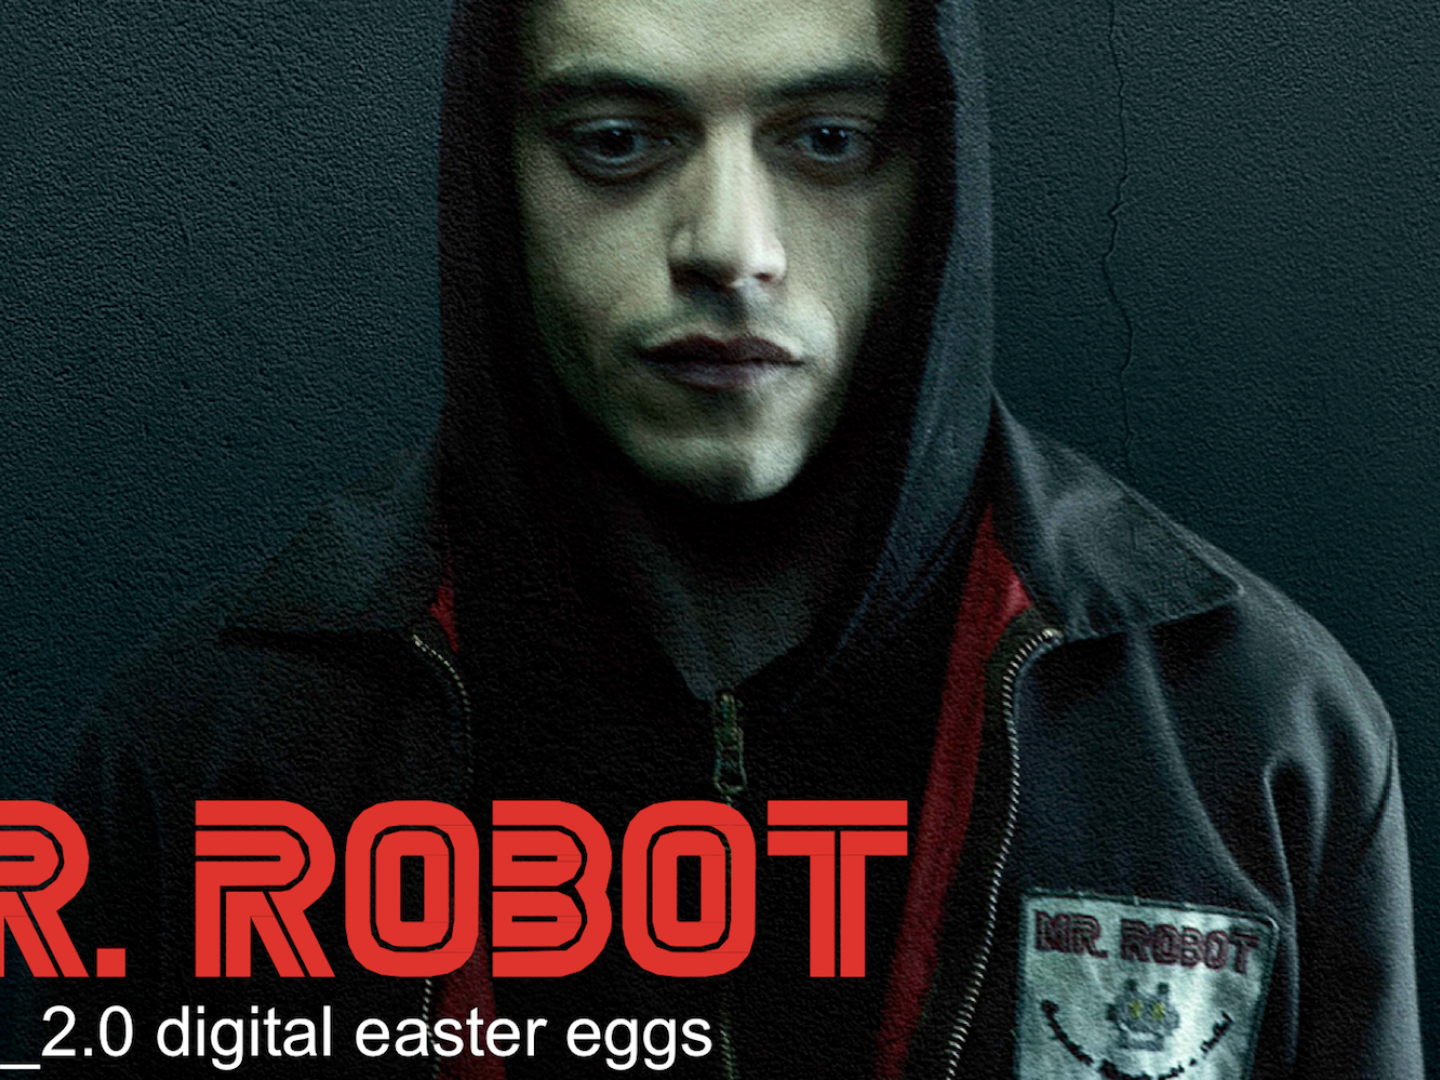 Mr. Robot Season 2 Digital Easter Eggs Thumbnail